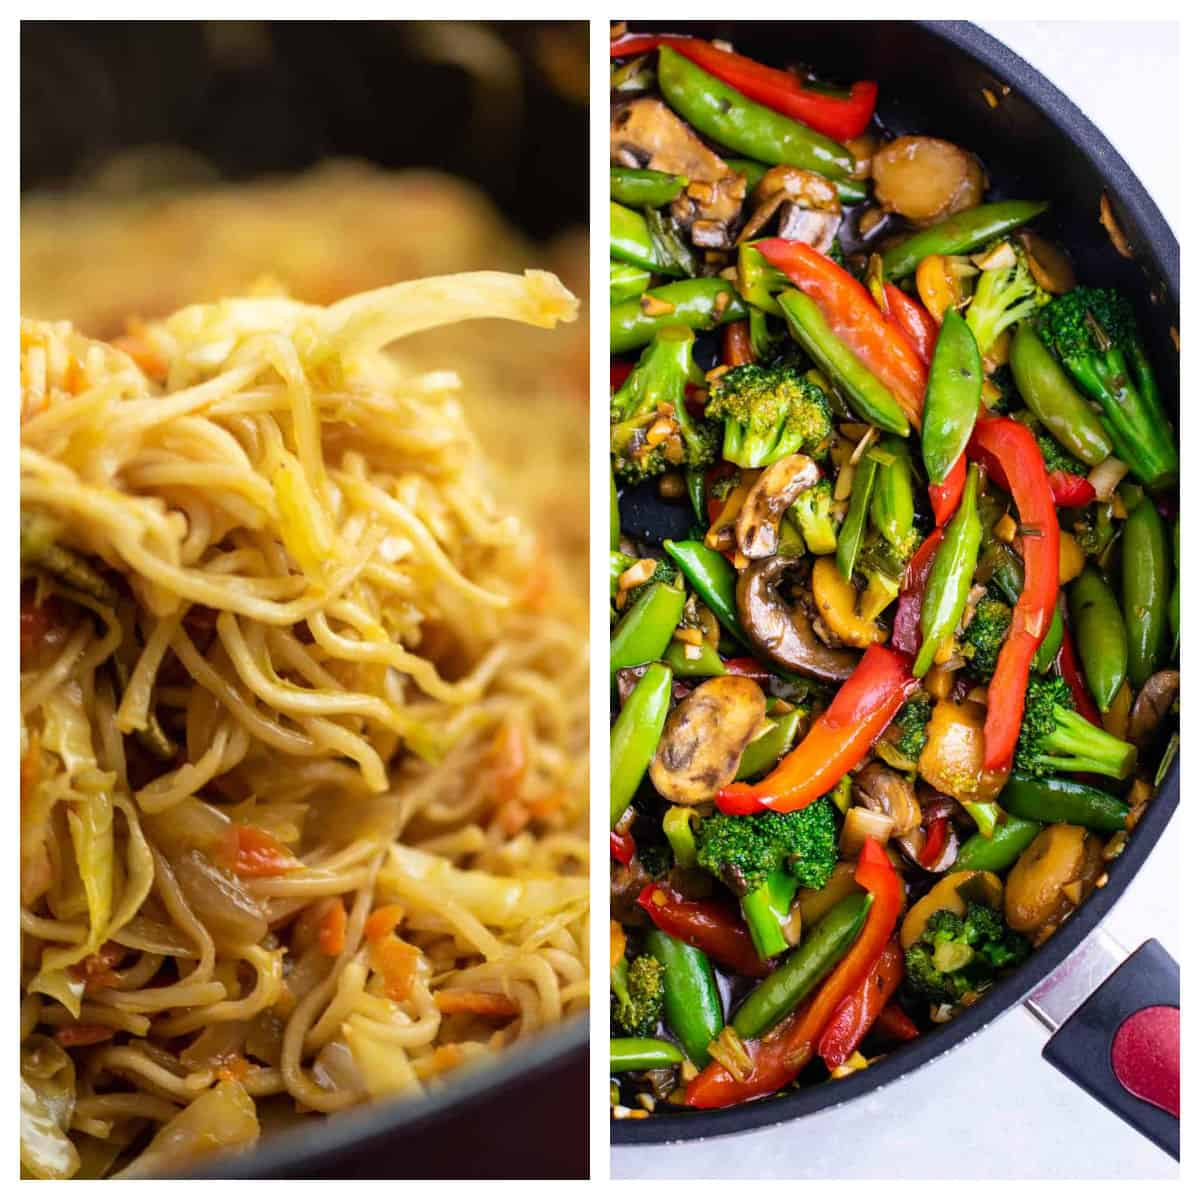 collage image showing cabbage stir fry and stir fry vegetables